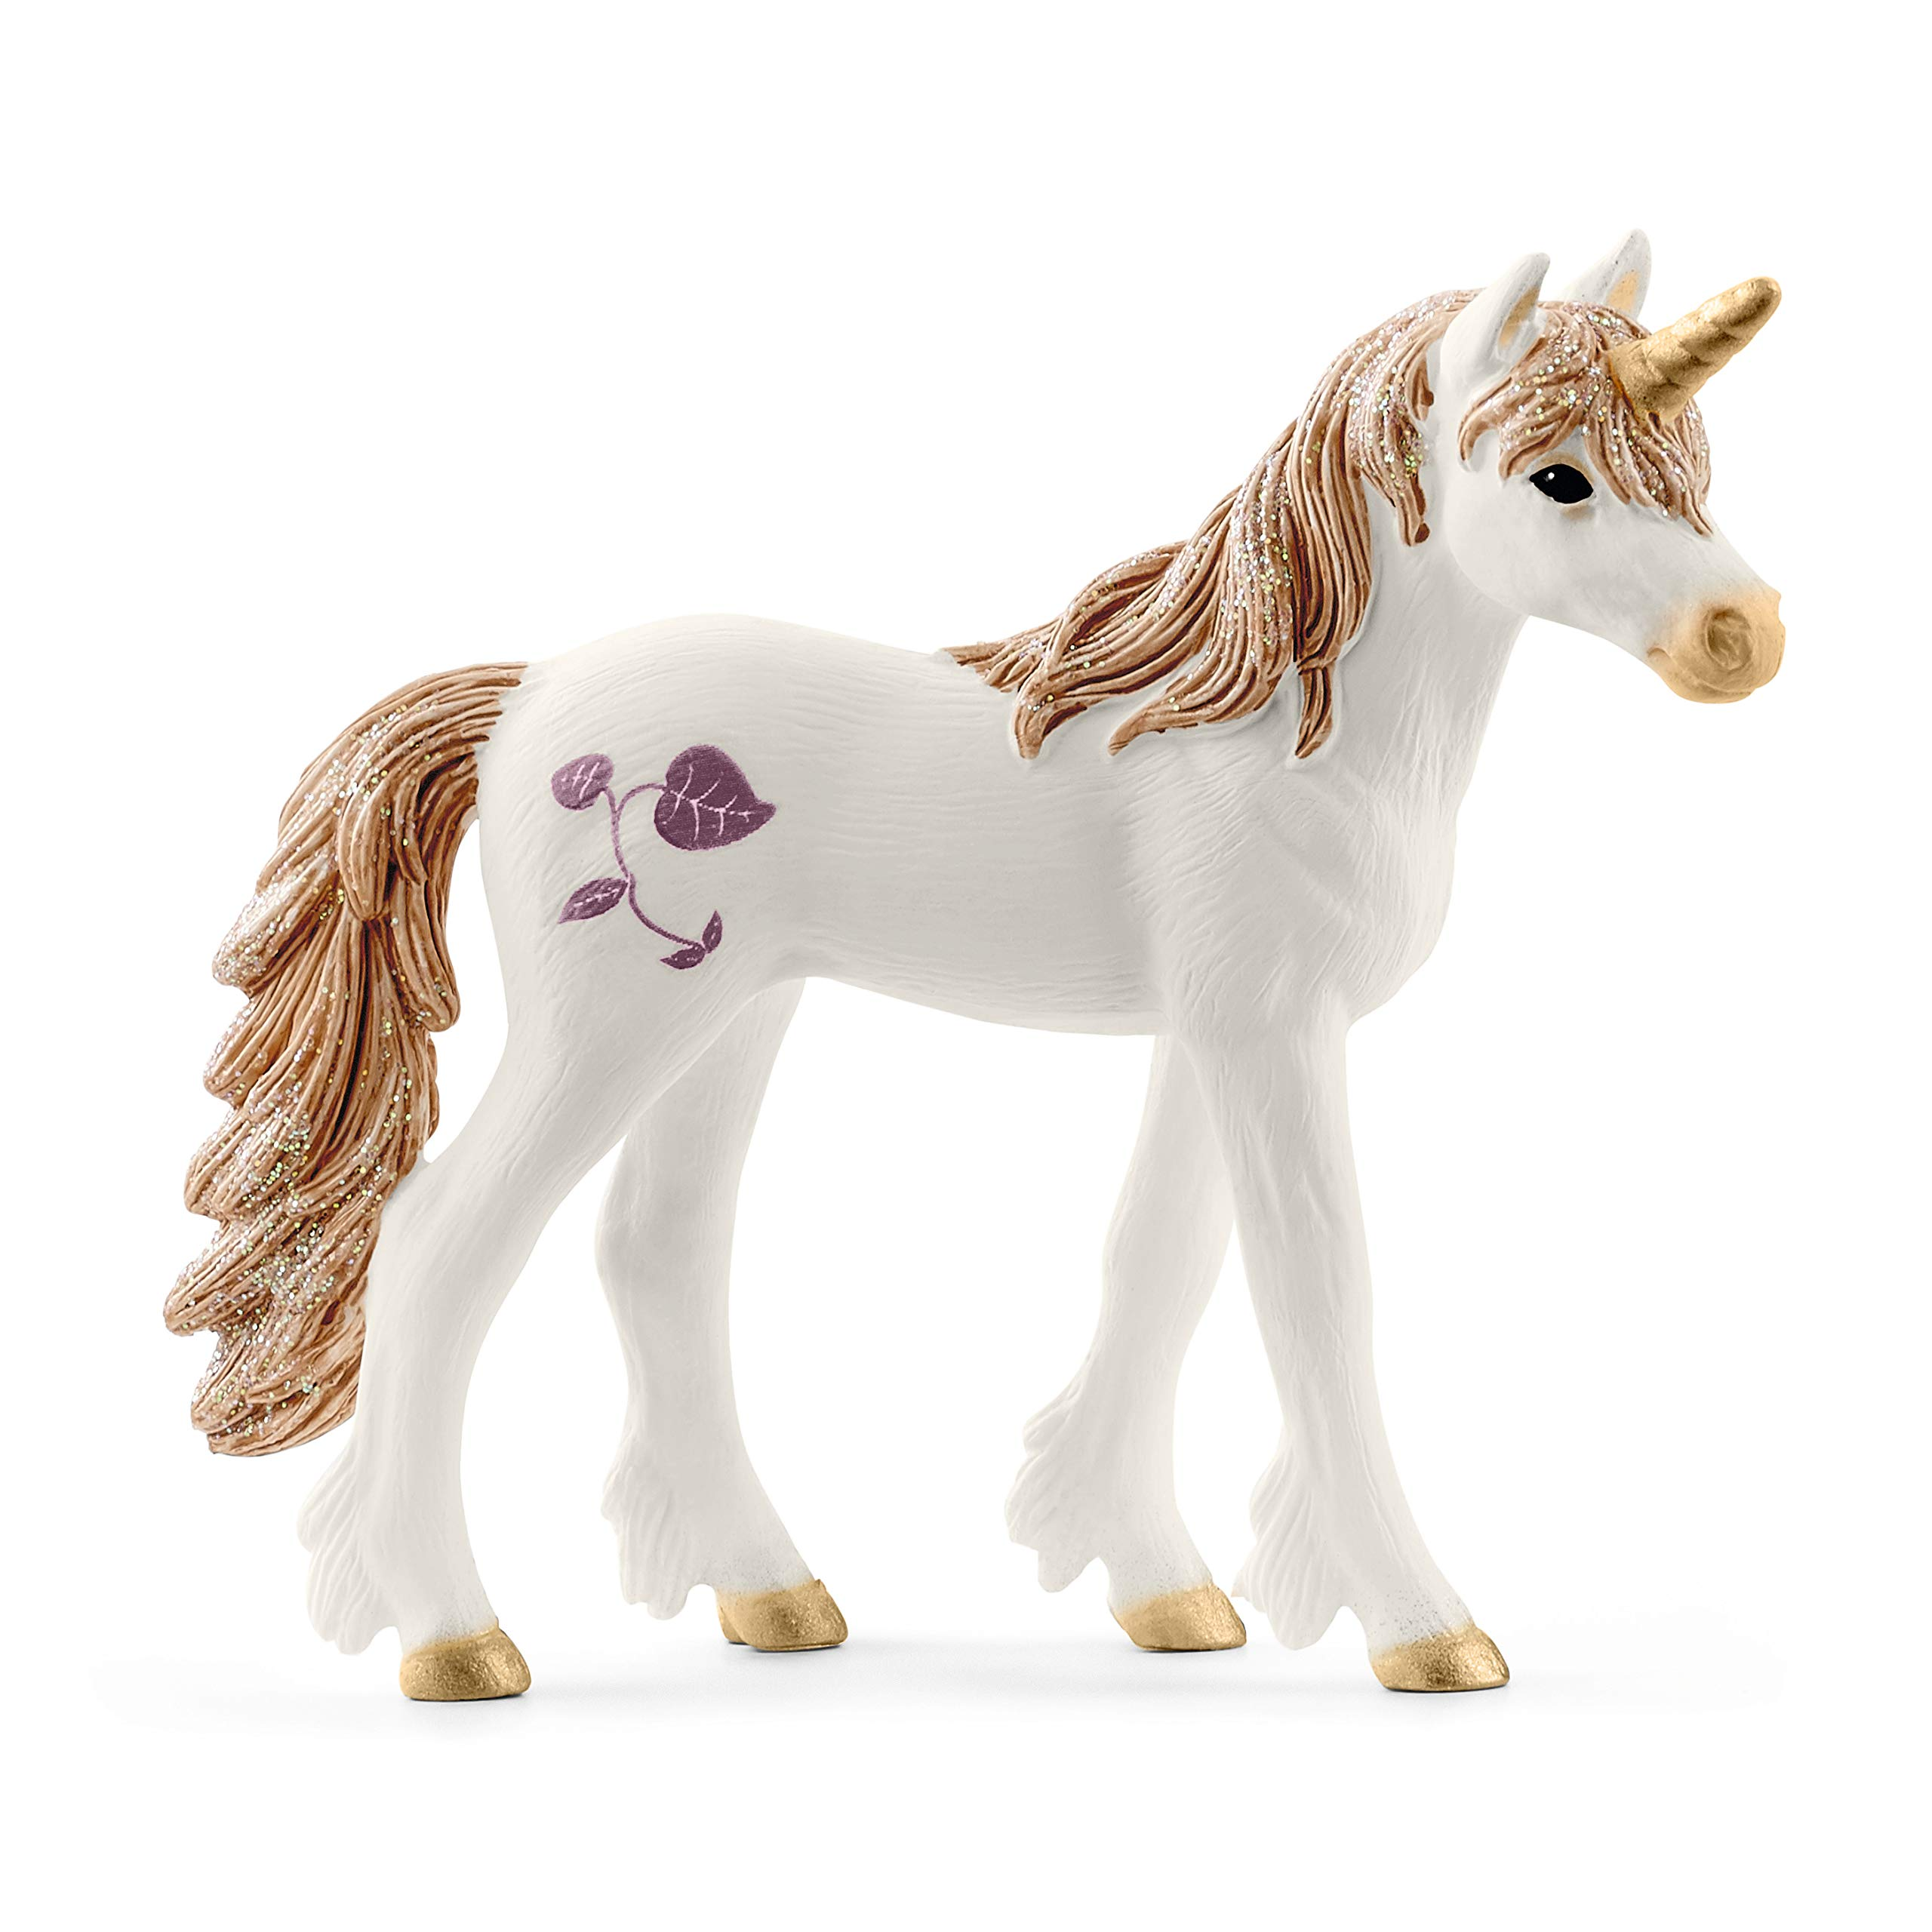 Schleich Glittering Flower House with Unicorns, Lake and Stable, Multicolor by Schleich (Image #11)